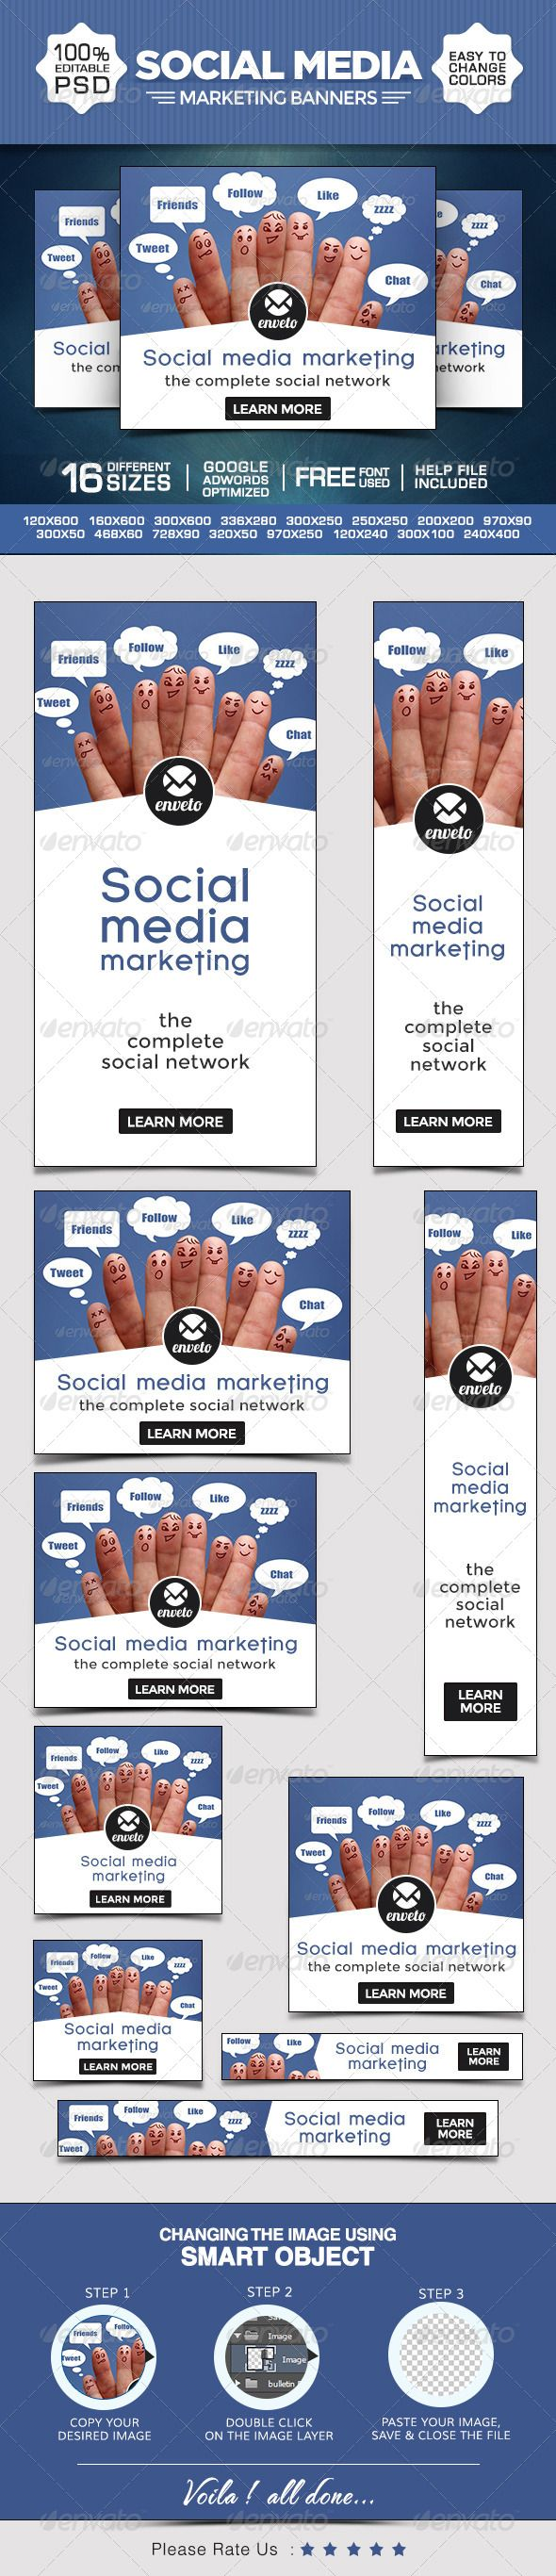 Social Media Marketing Banners Template PSD | Buy and Download: http://graphicriver.net/item/social-media-marketing-banners/8586013?WT.ac=category_thumb&WT.z_author=doto&ref=ksioks